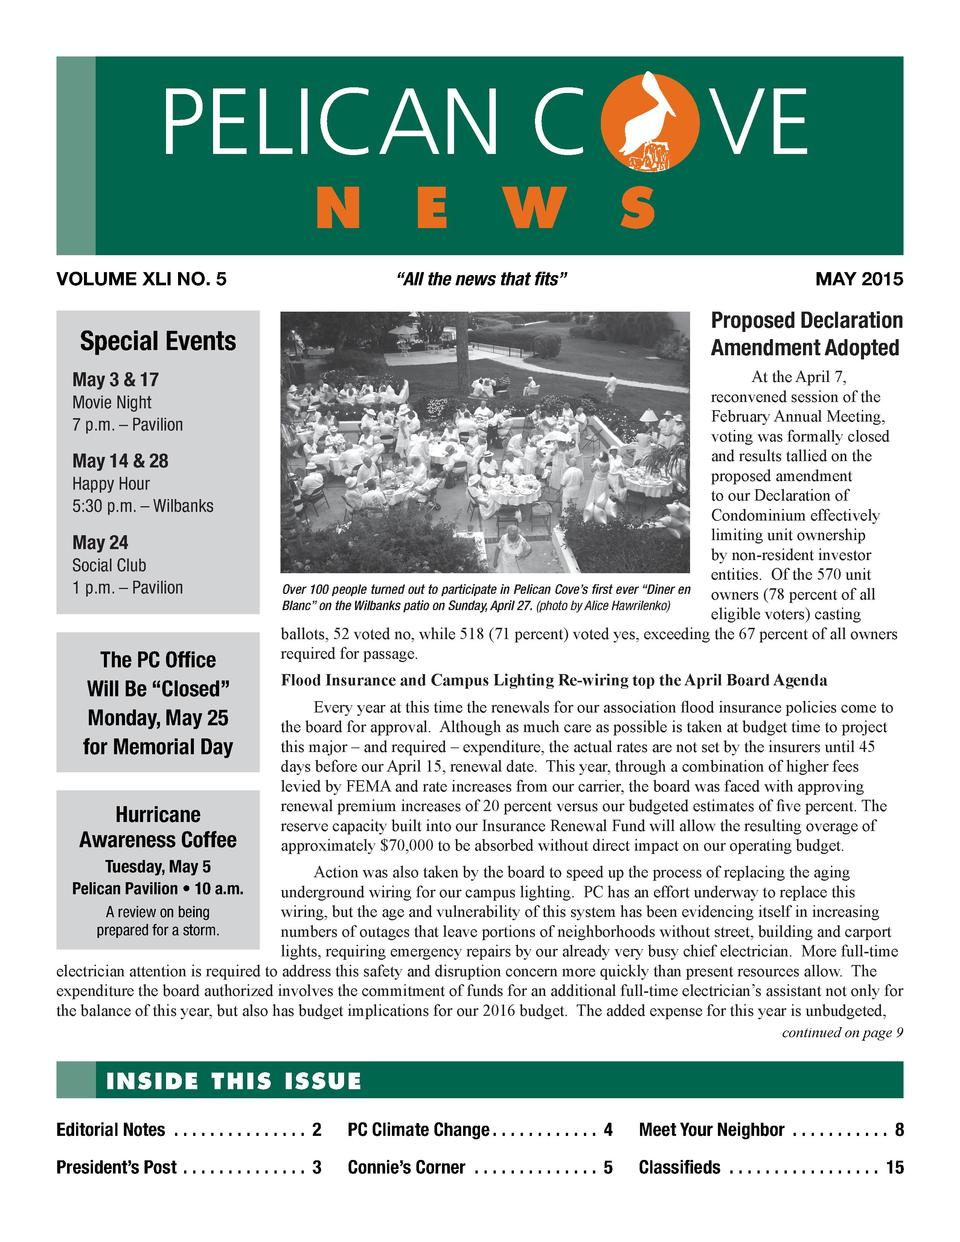 PELICAN C  n e w s  VOLUME XLI NO. 5     All the news that fits     Movie Night 7 p.m.     Pavilion  May 14   28 Happy Hou...